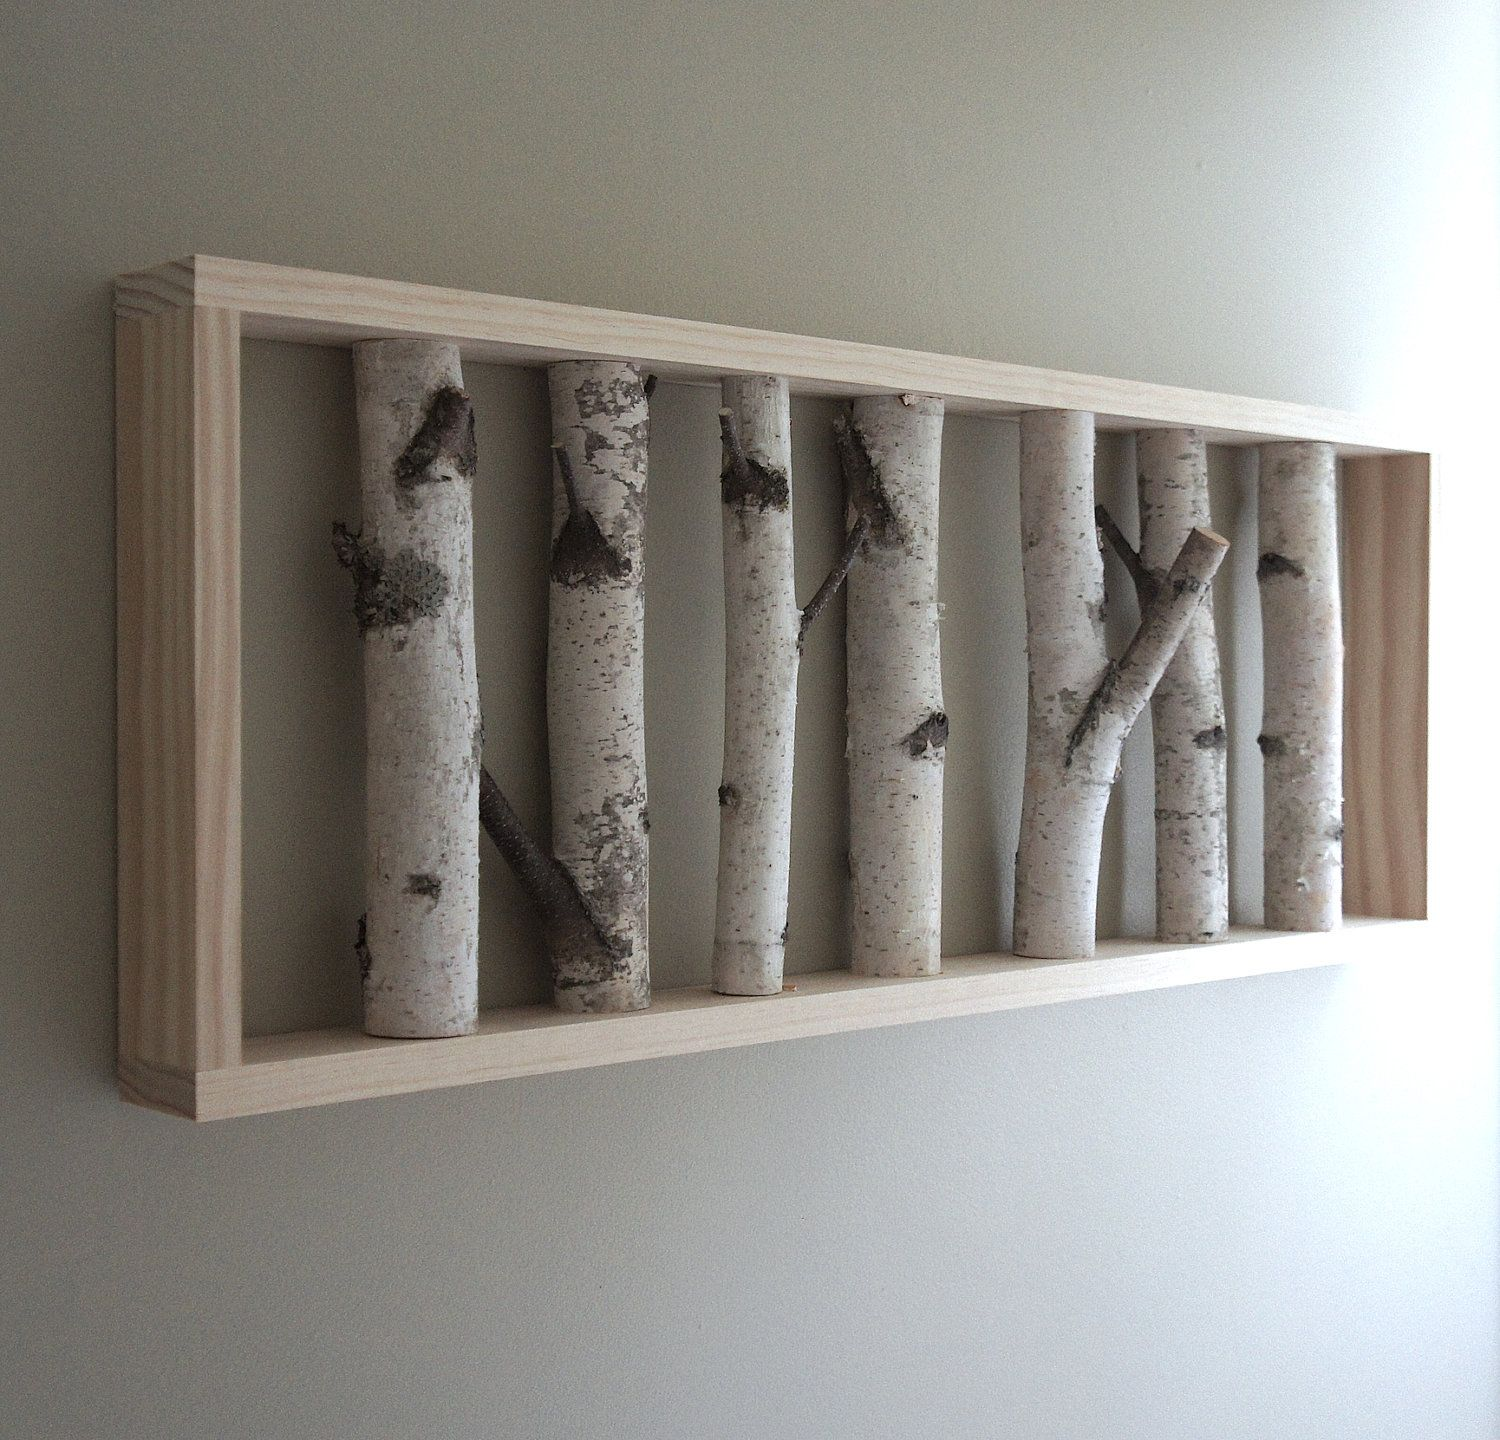 White birch forest wall art - 36 x 12, birch branch decor, birch log ...